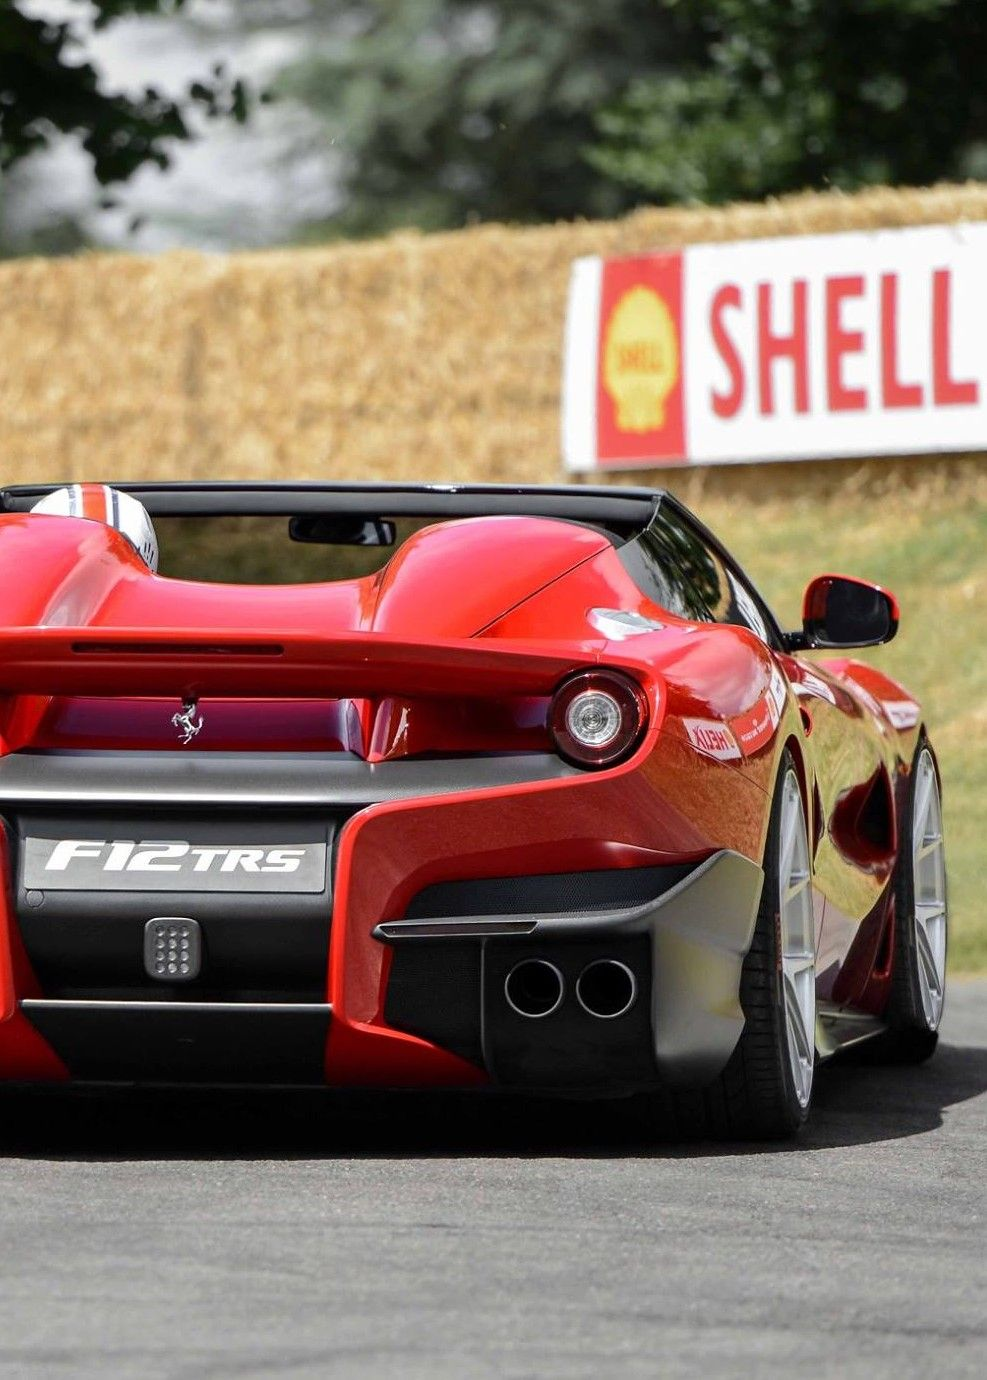 Ferrari F12 Trs Cool Cars Motorcycles Pinterest Cars